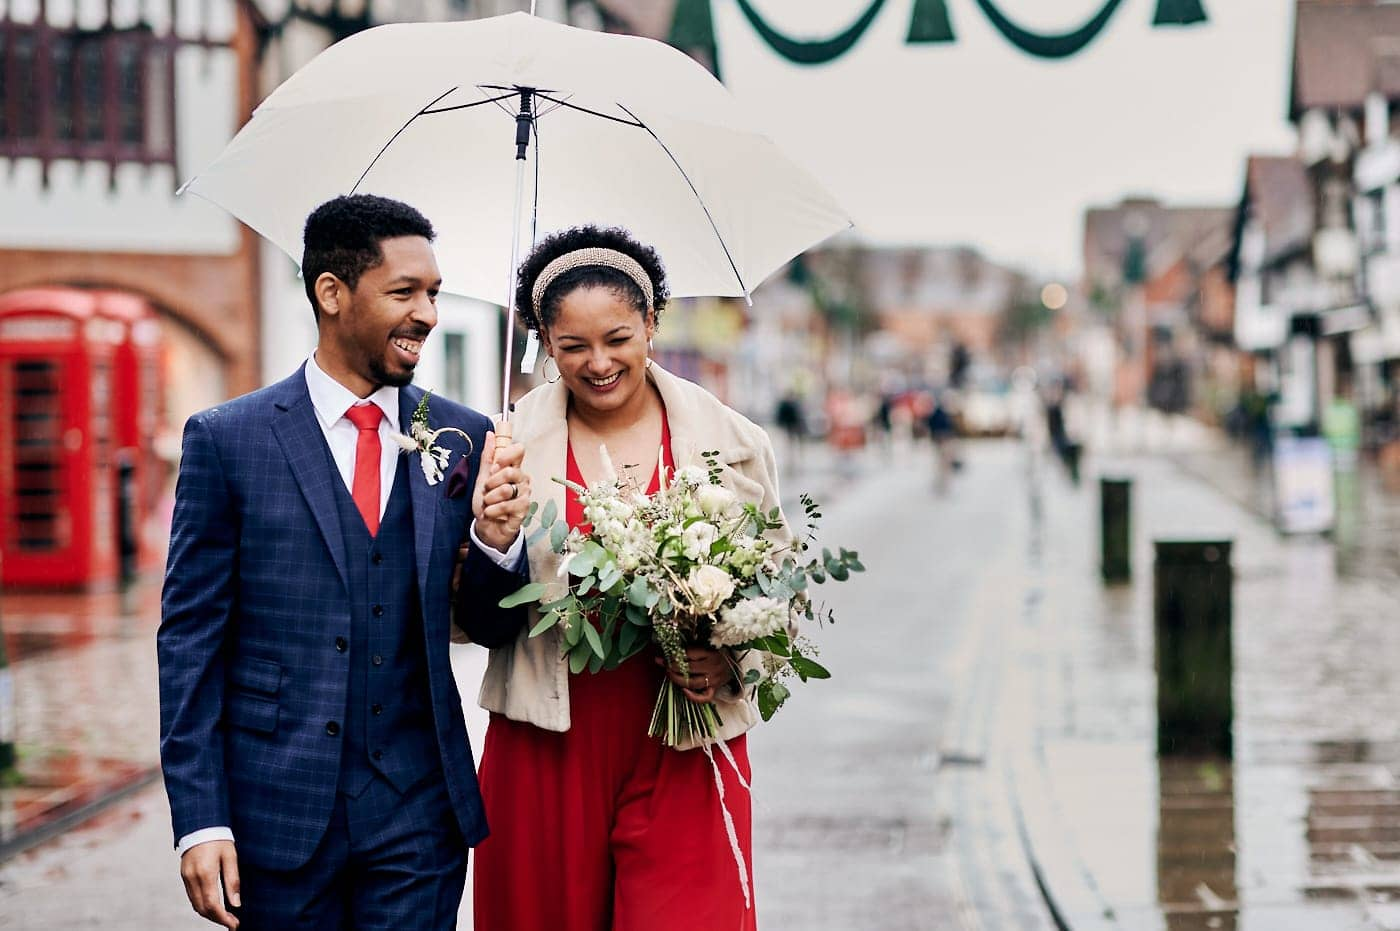 Newly married couple laughing as they walk together in Stratford-upon-Avon